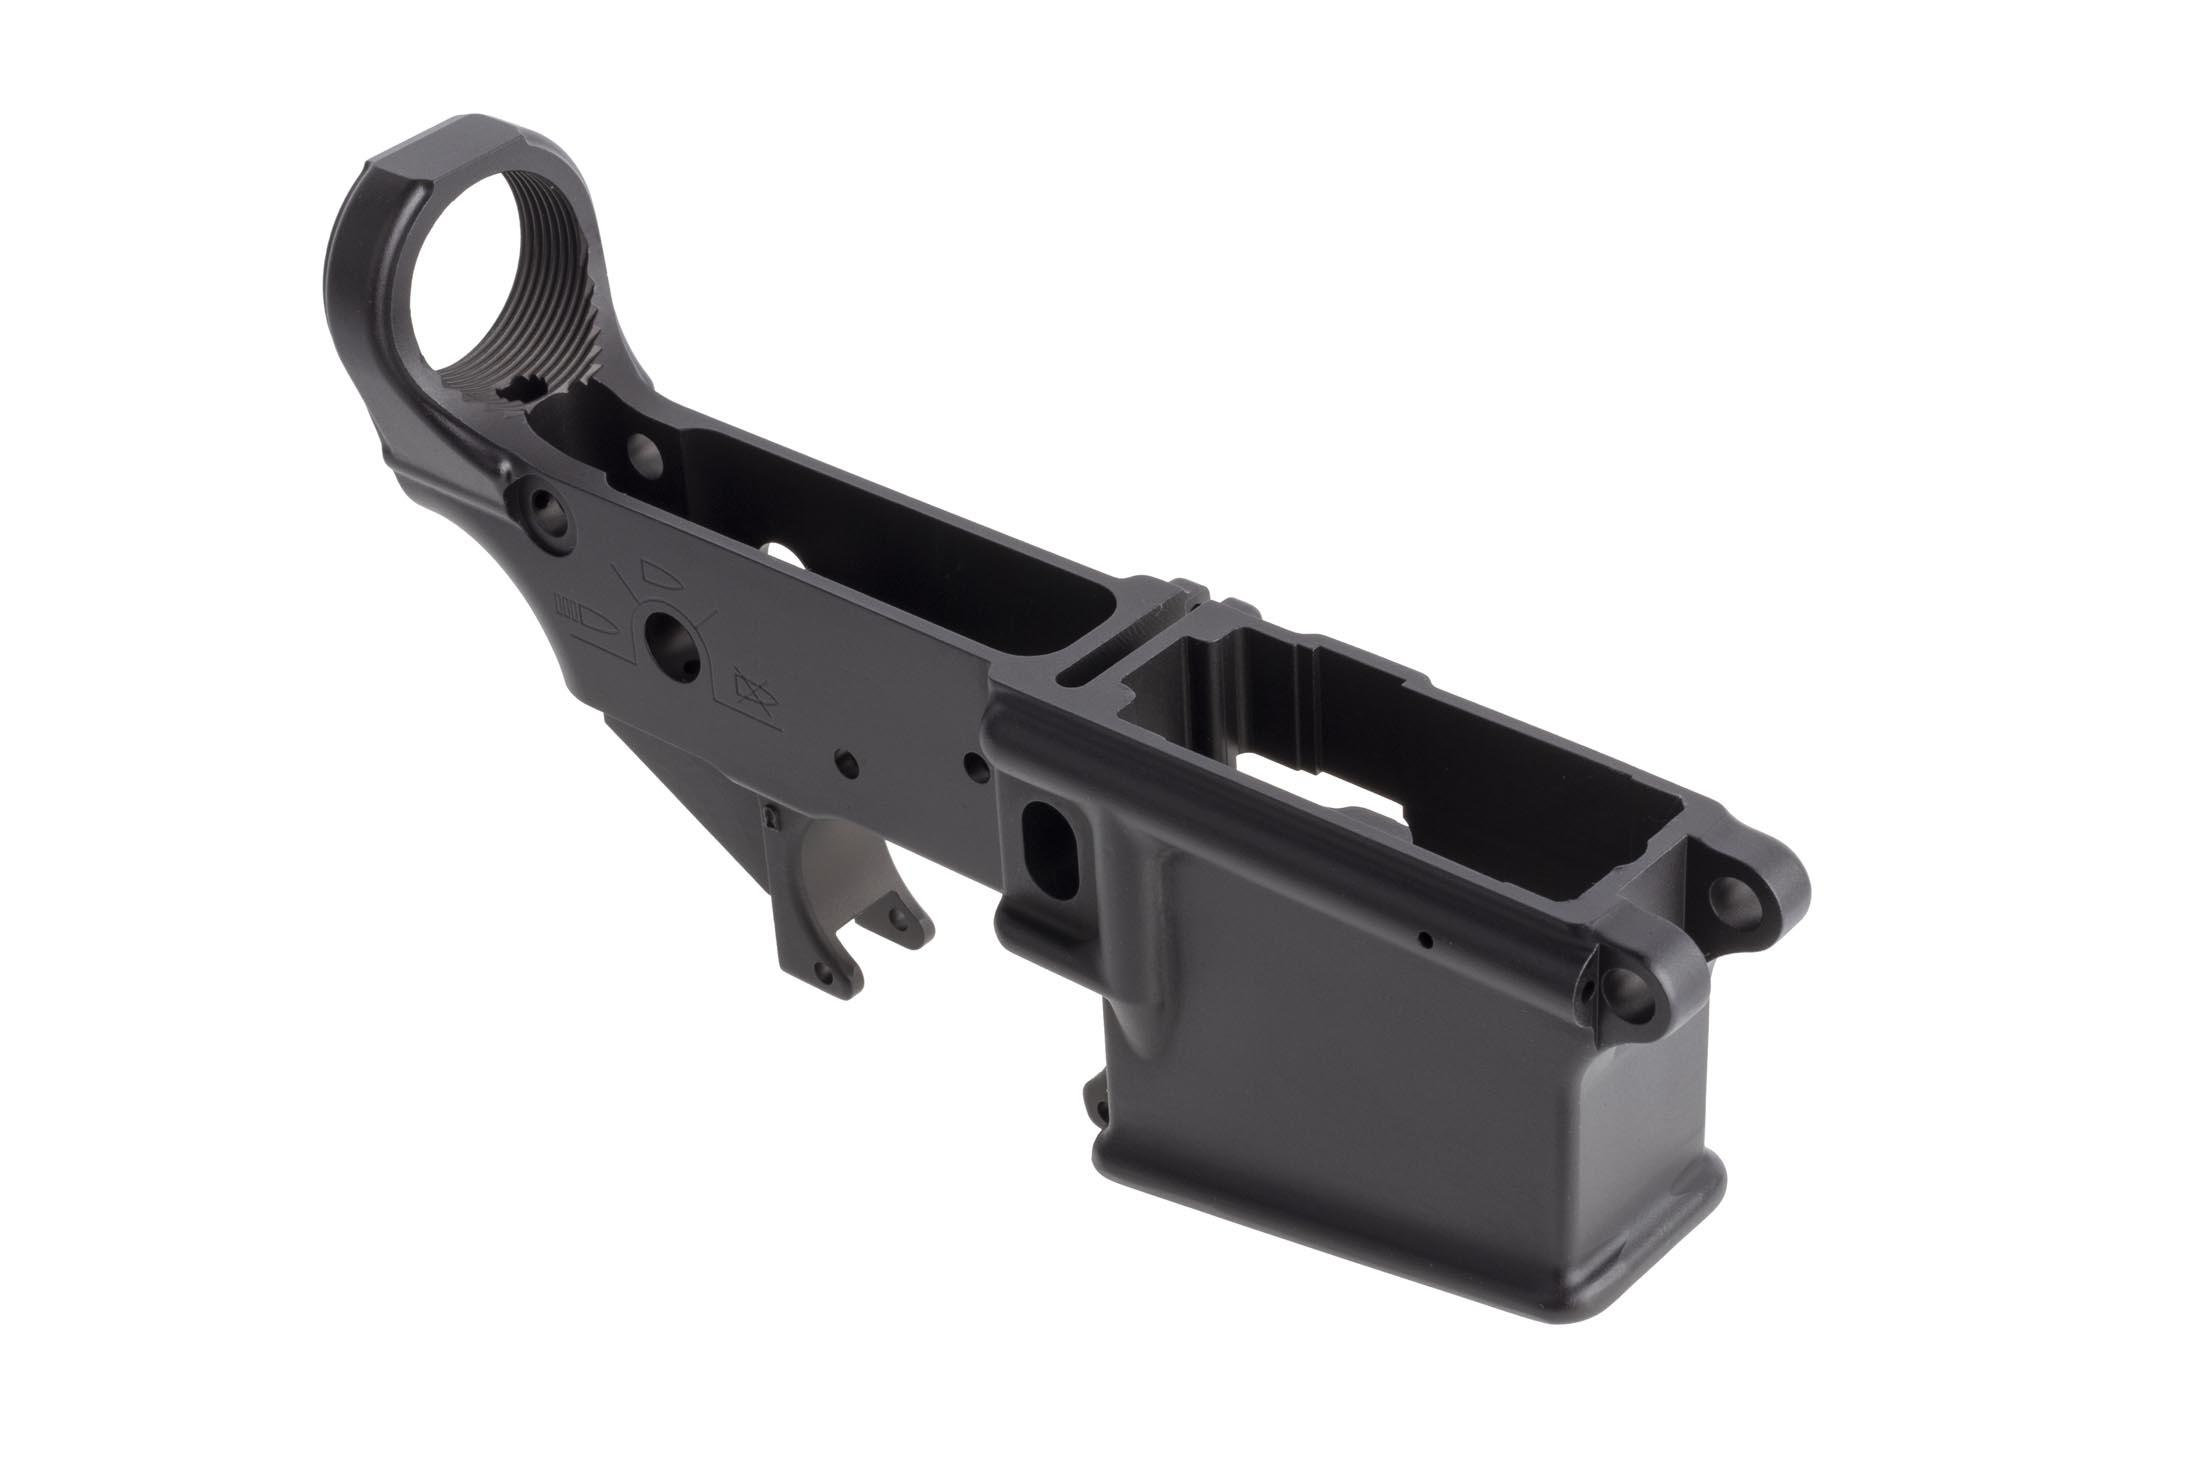 Sons of Liberty Gun Works angry patriot stripped lower receiver is a forged 7075-T6 aluminum lower with high quality finish